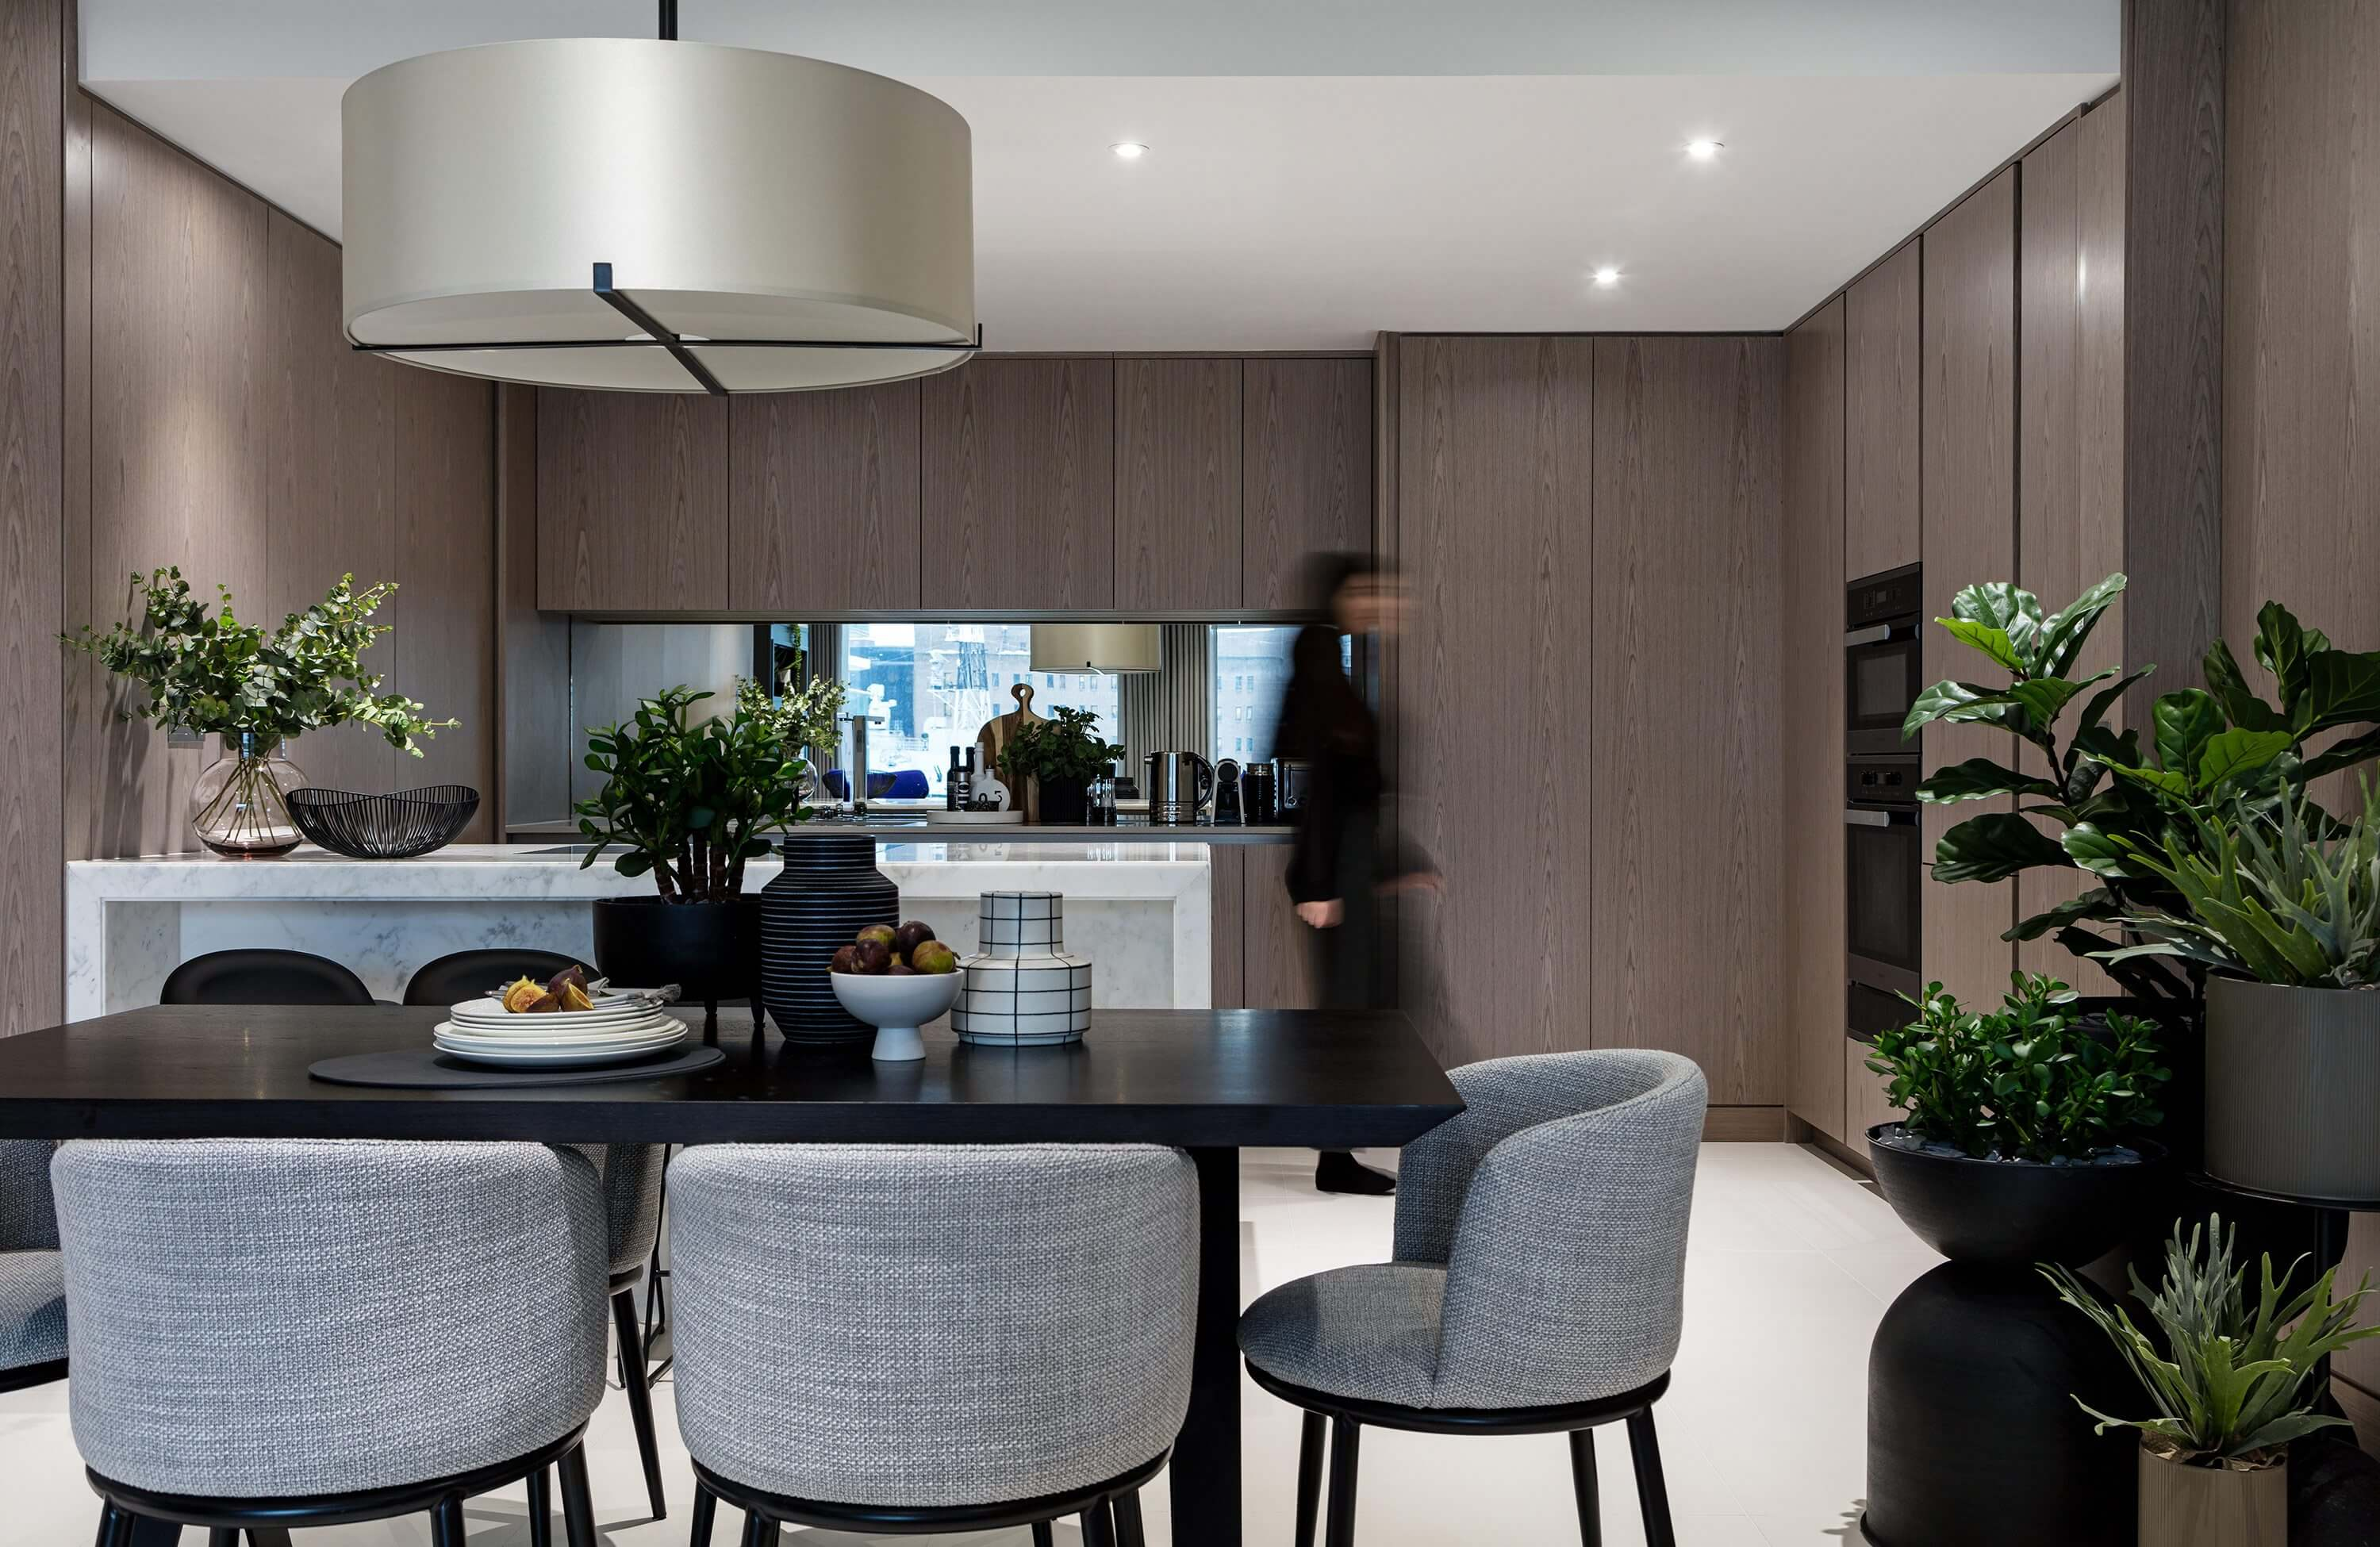 Honky Interior Design Luxury Apartment Hackney Road Dining and Kitchen 2